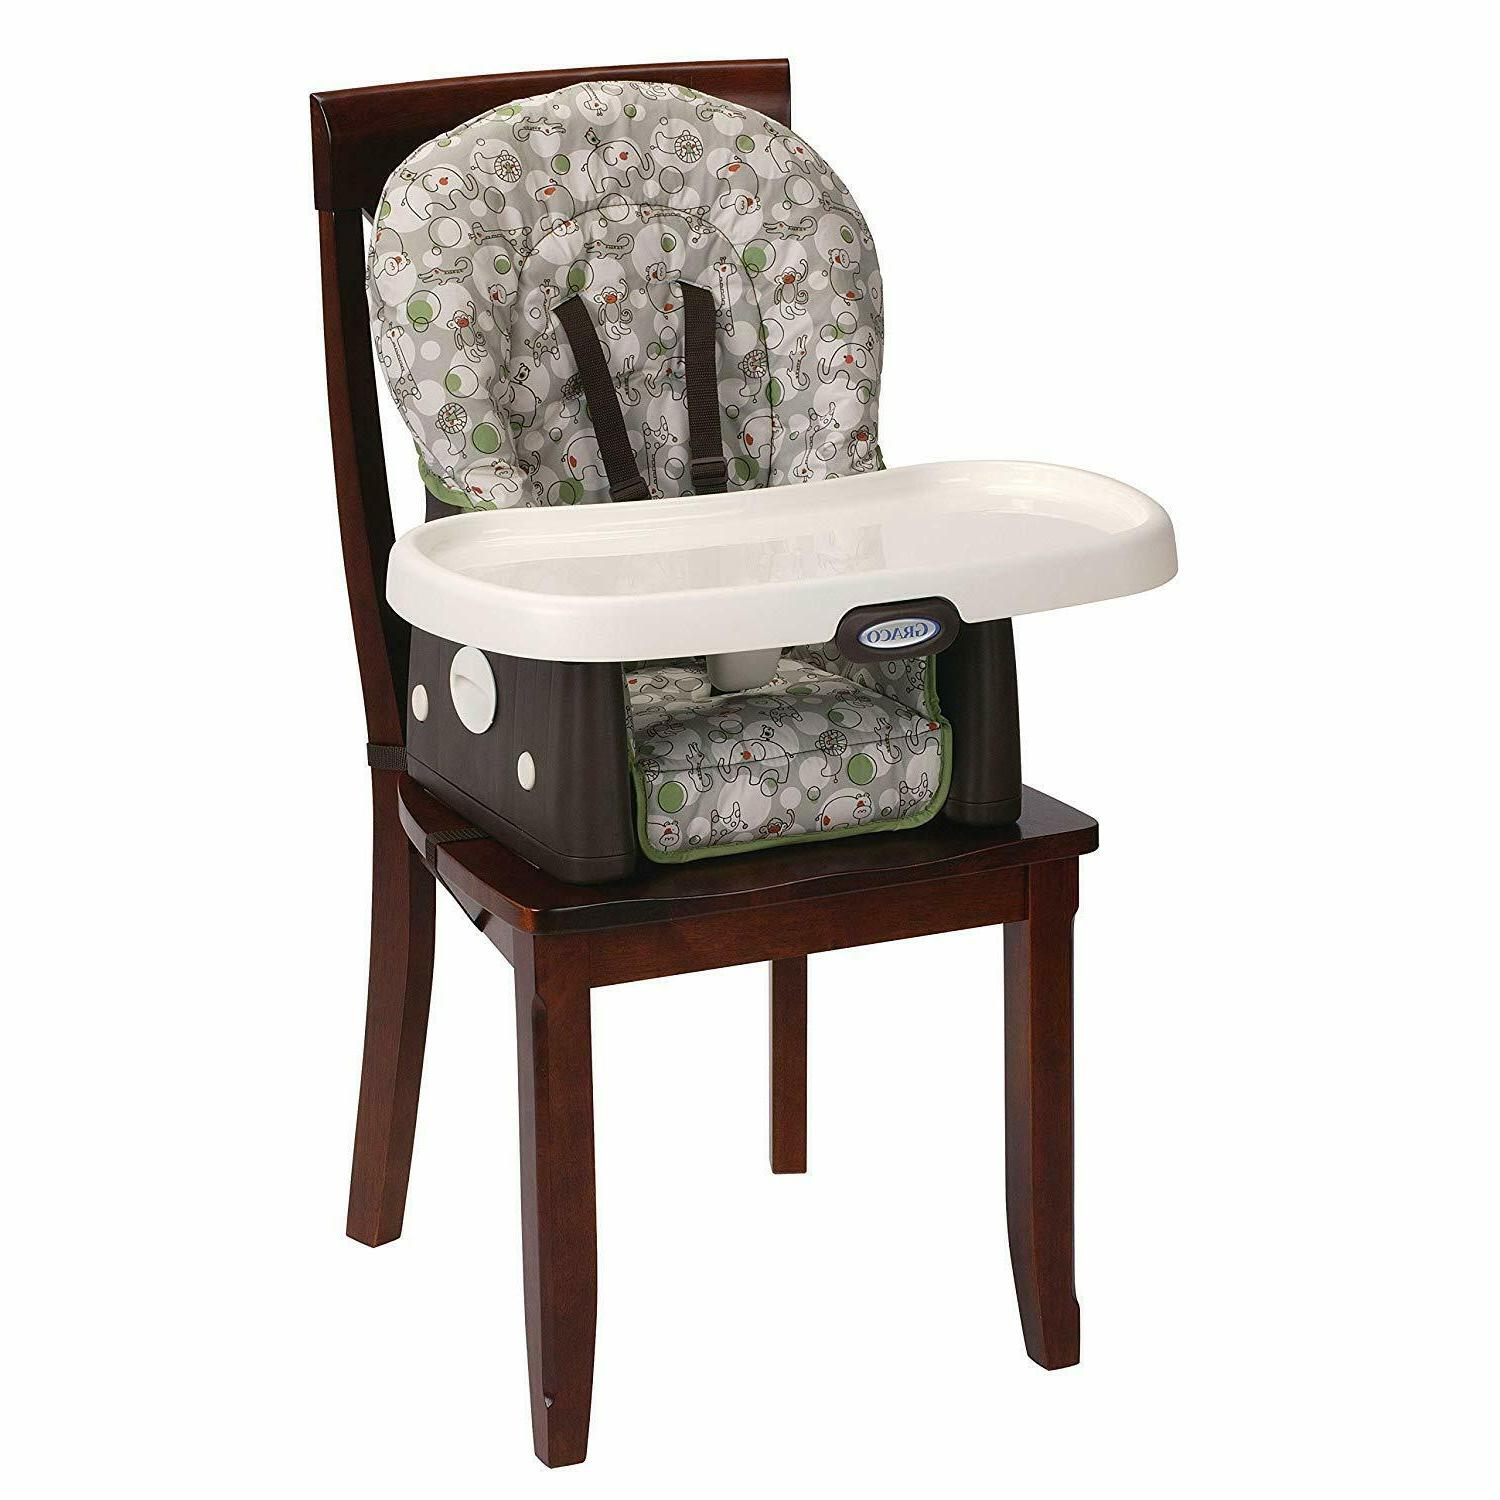 Portable High Chair 3 Position Machine Washable Seat